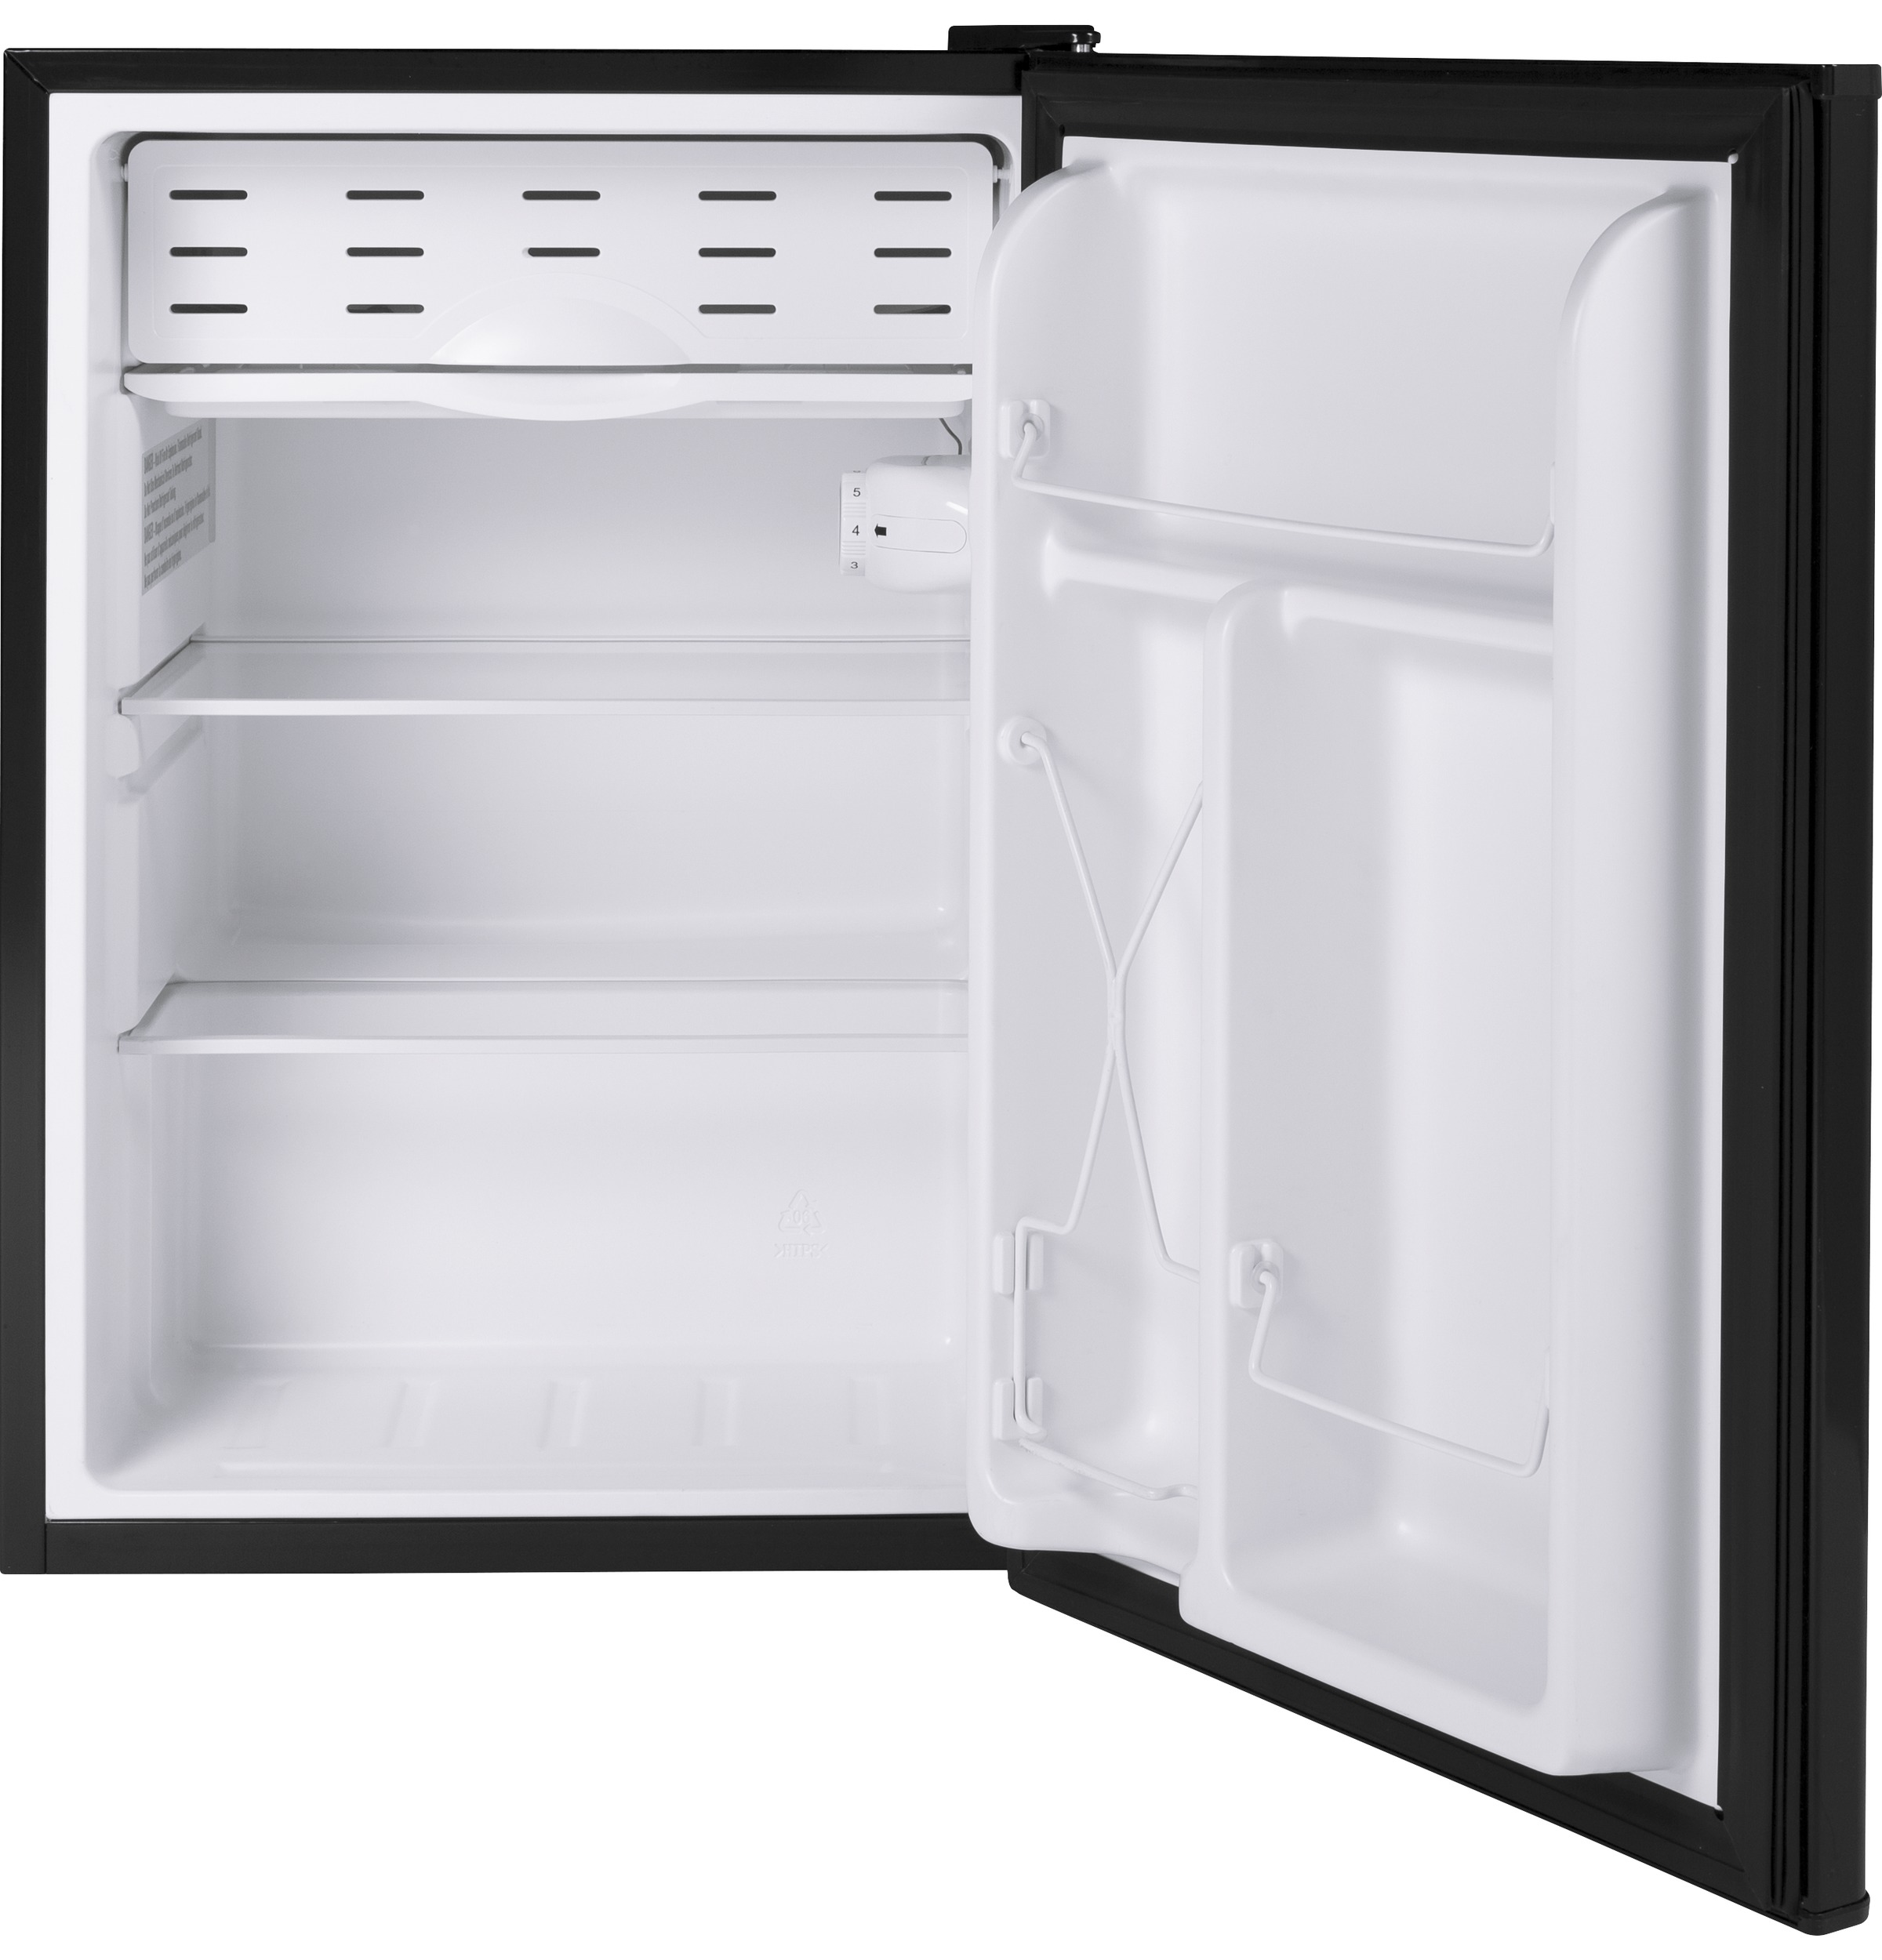 Model: HME03GGMBB | Hotpoint® 2.7 cu. ft. ENERGY STAR® Qualified Compact Refrigerator